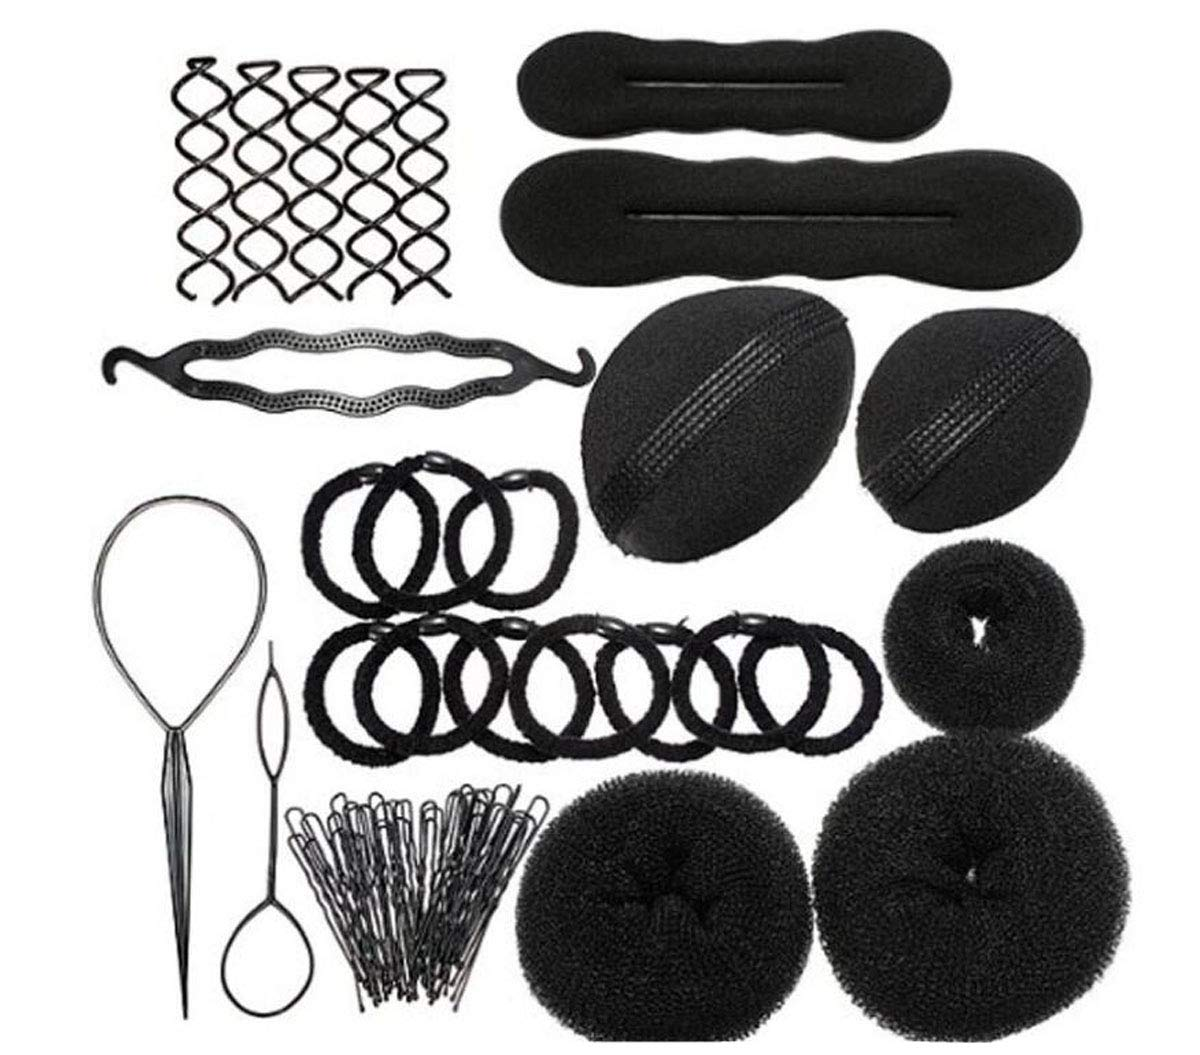 1Set As picture Shown Elastic Hair Donut Roll Ring Tie Ropes Hairpins Pin Barrette Rubber Band Hair Bun Insert Volume Bump Up Maker Clip Comb Braid Ponytail Holder Twist Hairband Updo Chignon Former Pads DIY Hair Style Styling Braiding Tool Accessories TUP